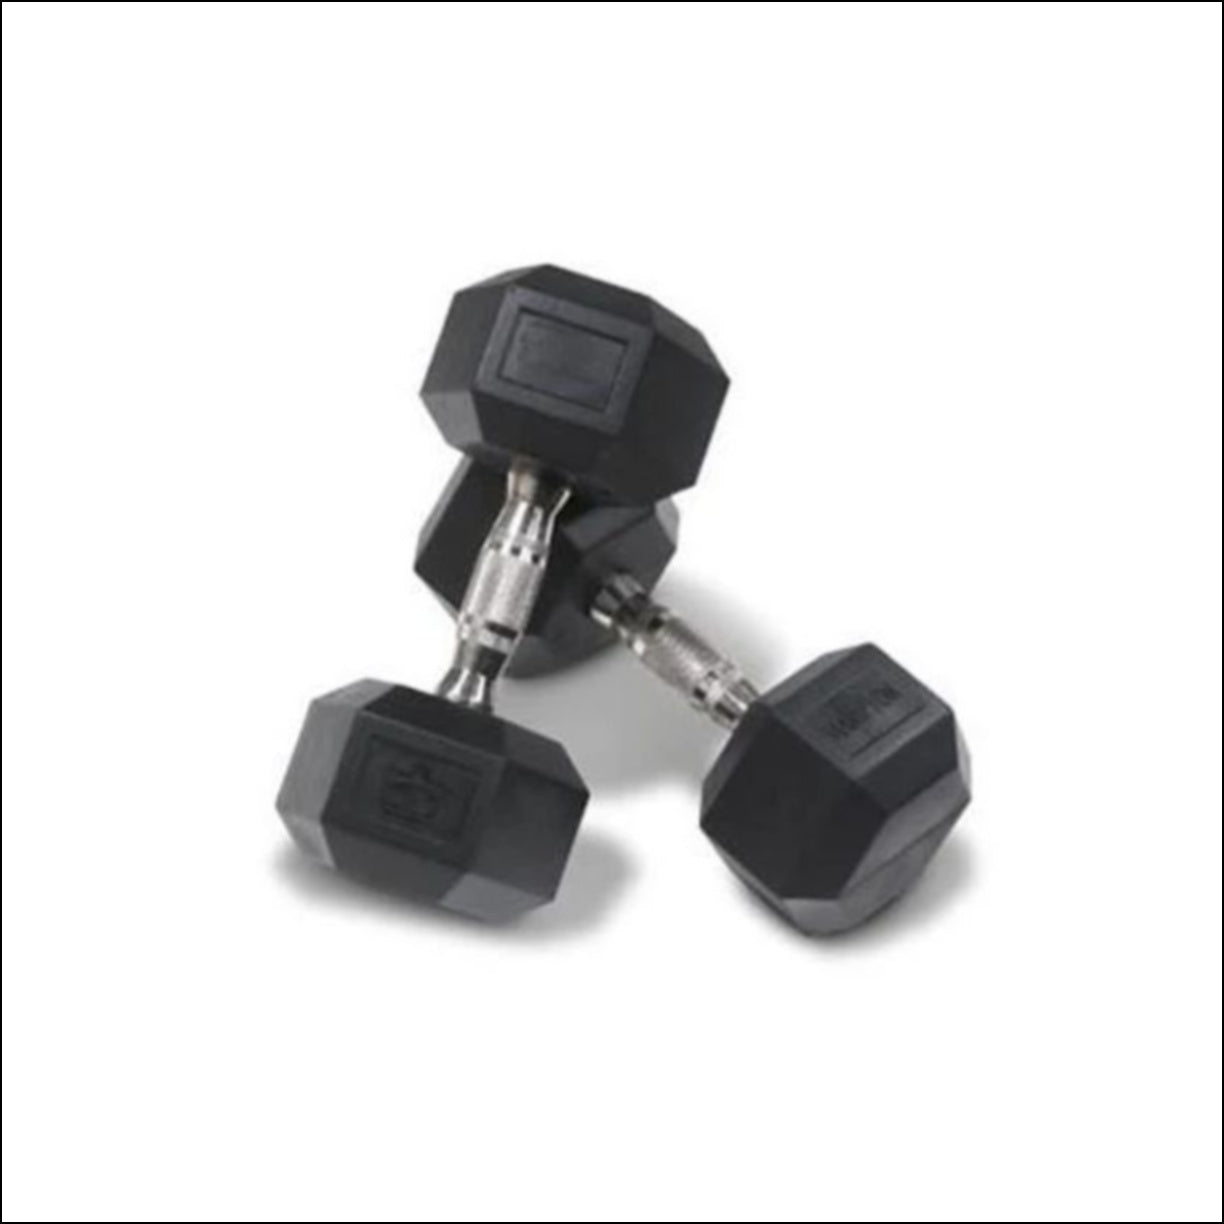 PAIR OF 8-kg RUBBER HEX DUMBBELLS  Muscle Motion Rubber coated hexagonal dumbbells with ergonomic handles are designed for increased comfort and improved durability. Rubber coating reduces noise improves life cycle of the product  (other finishes such as chrome and cast iron are subject to chipping and rust). Rubber coated dumbbells are also kinder on floor surfaces. The hexagonal shaped ends are designed to prevent the dumbbell from rolling on the floor or dumbbell rack.